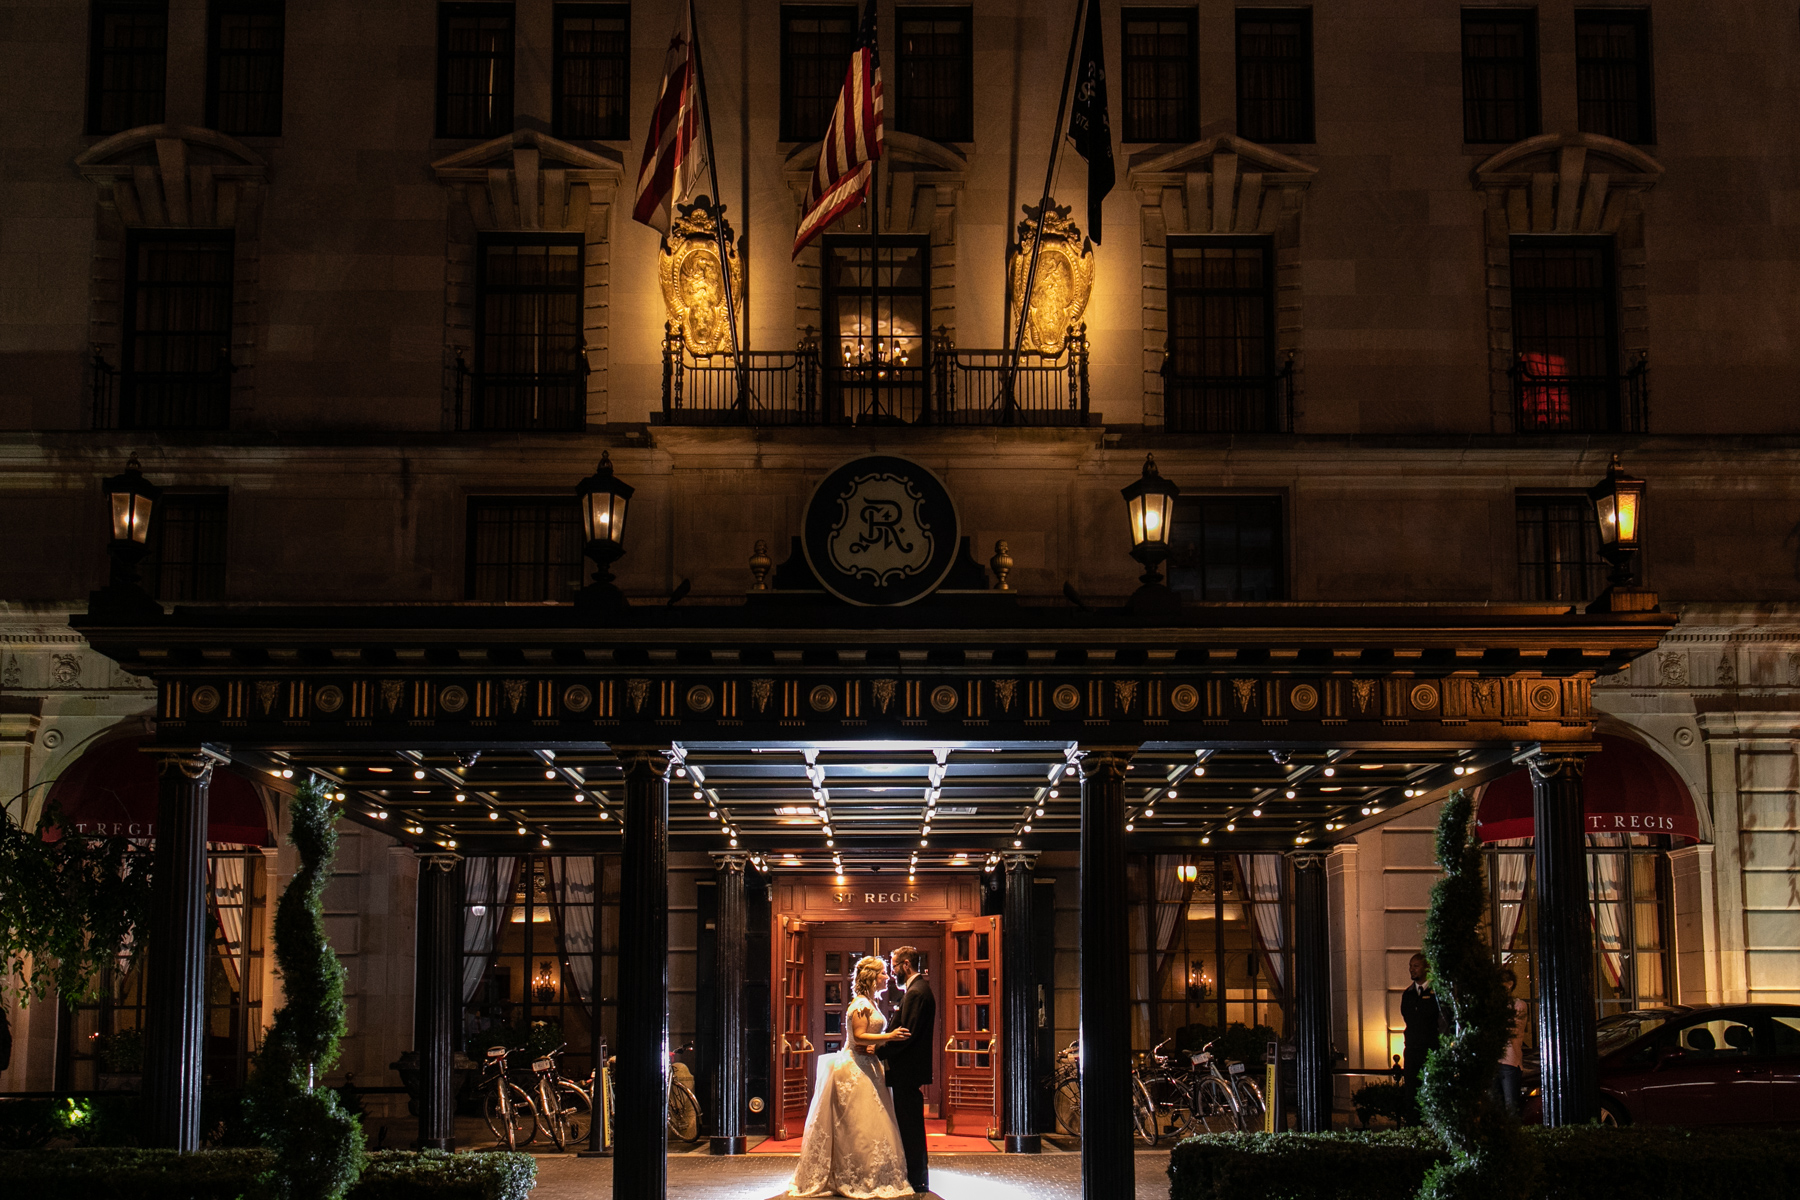 Wedding couple in front of the St. Regis Hotel Washington DC